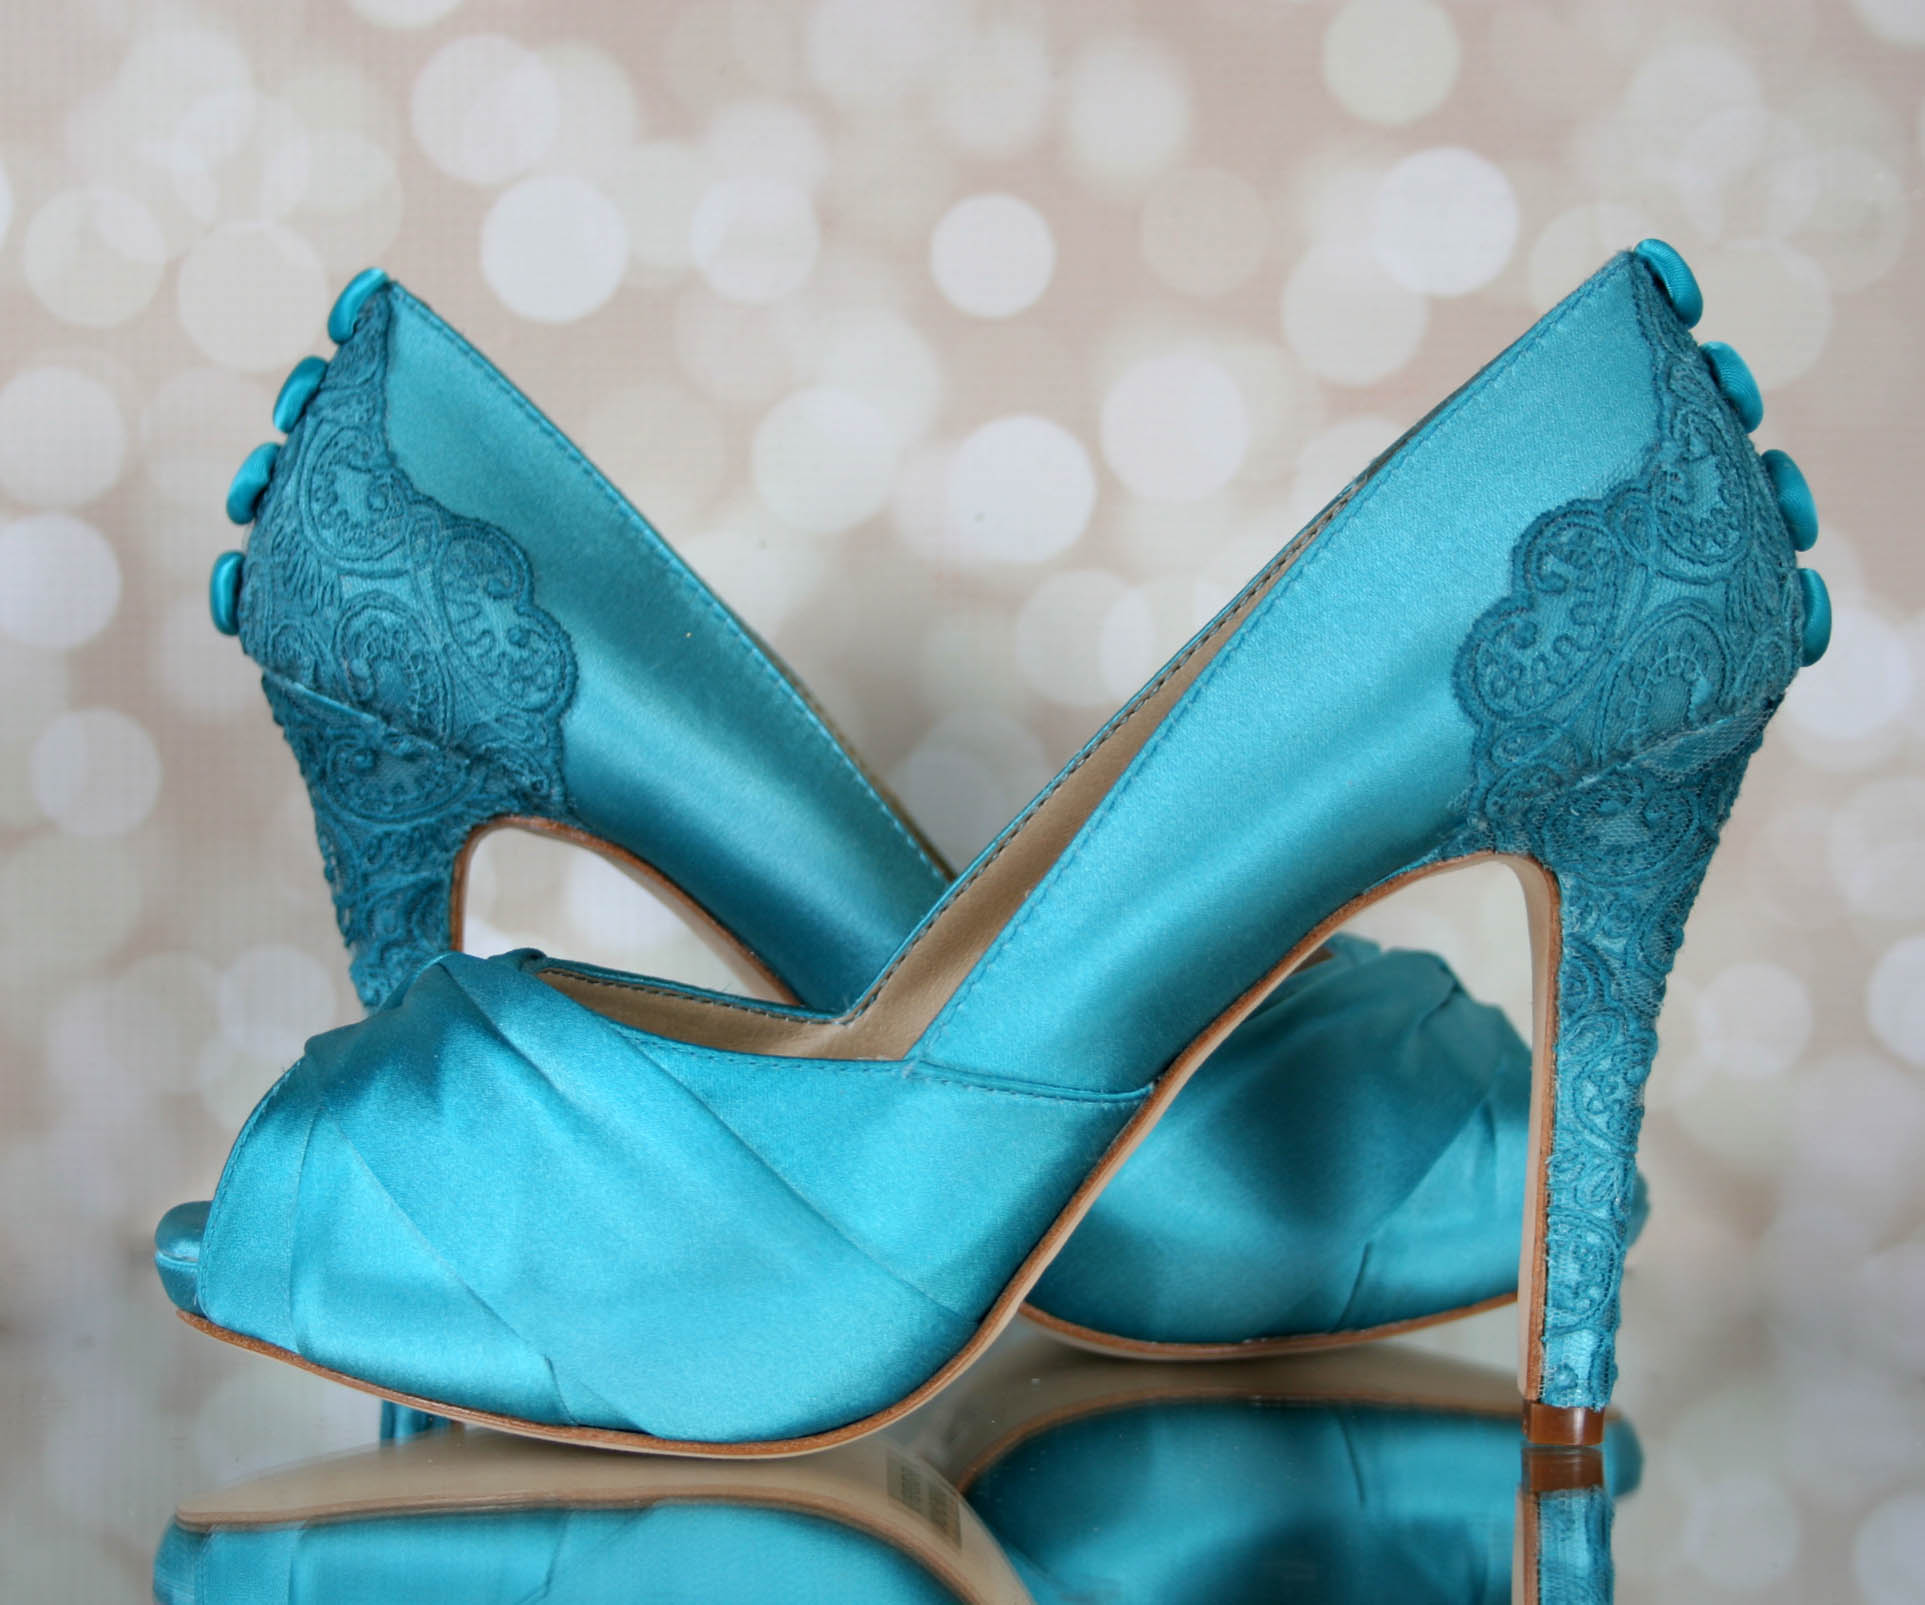 Blue Open Toe Platform Wedding Shoes with Lace Heel and Matching Sating Buttons Custom Wedding Shoes Ellie Wren